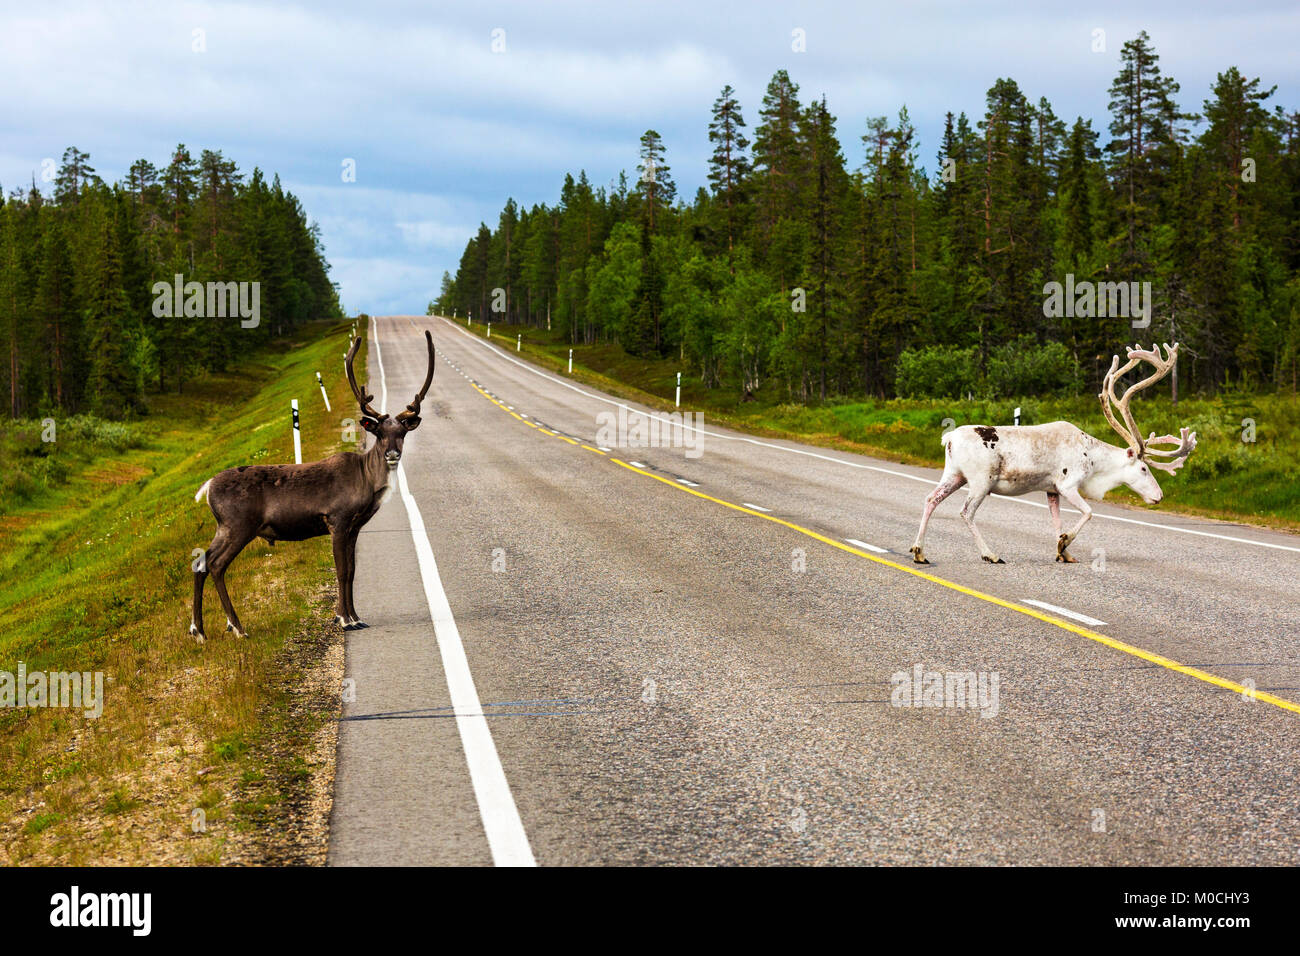 Two reindeers on a road in Finland. Stock Photo